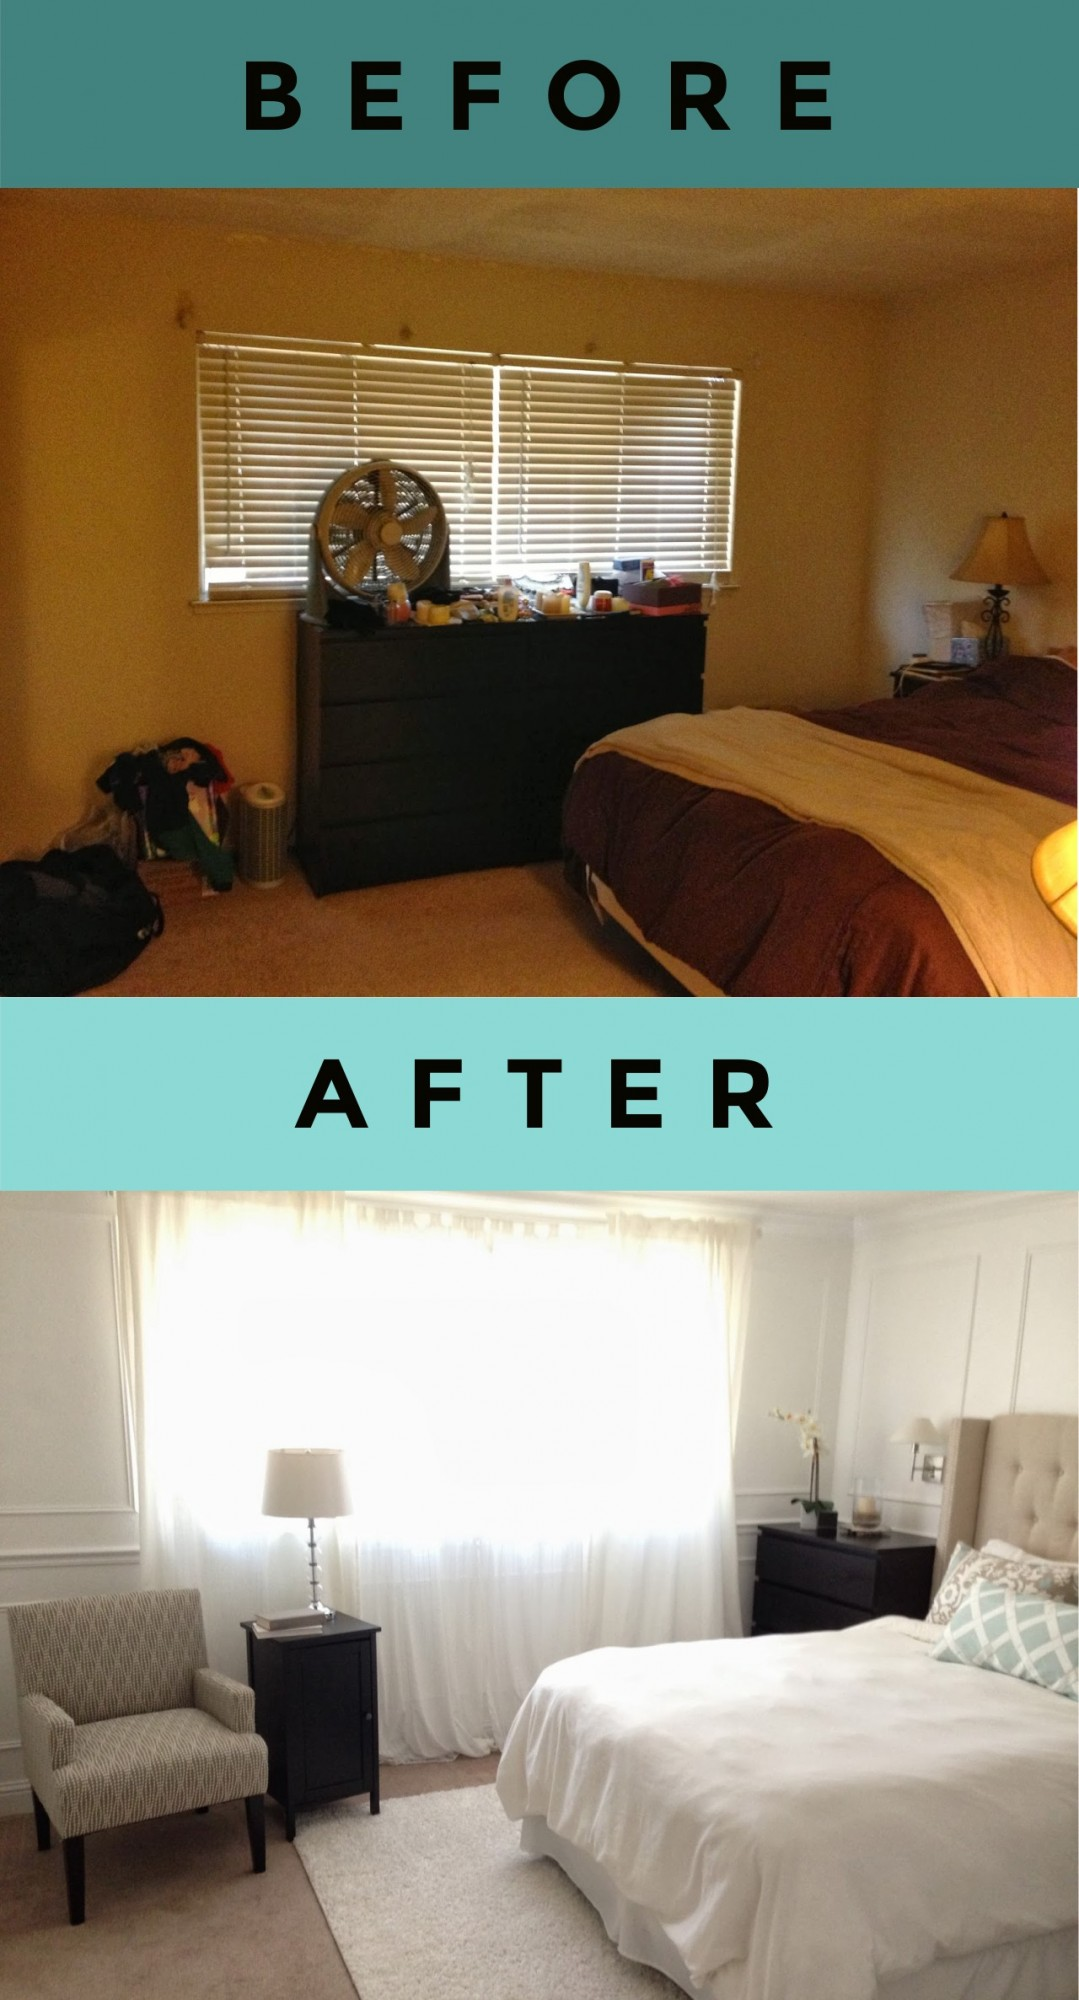 How to make a small bedroom look bigger and brighter with curtains and paint